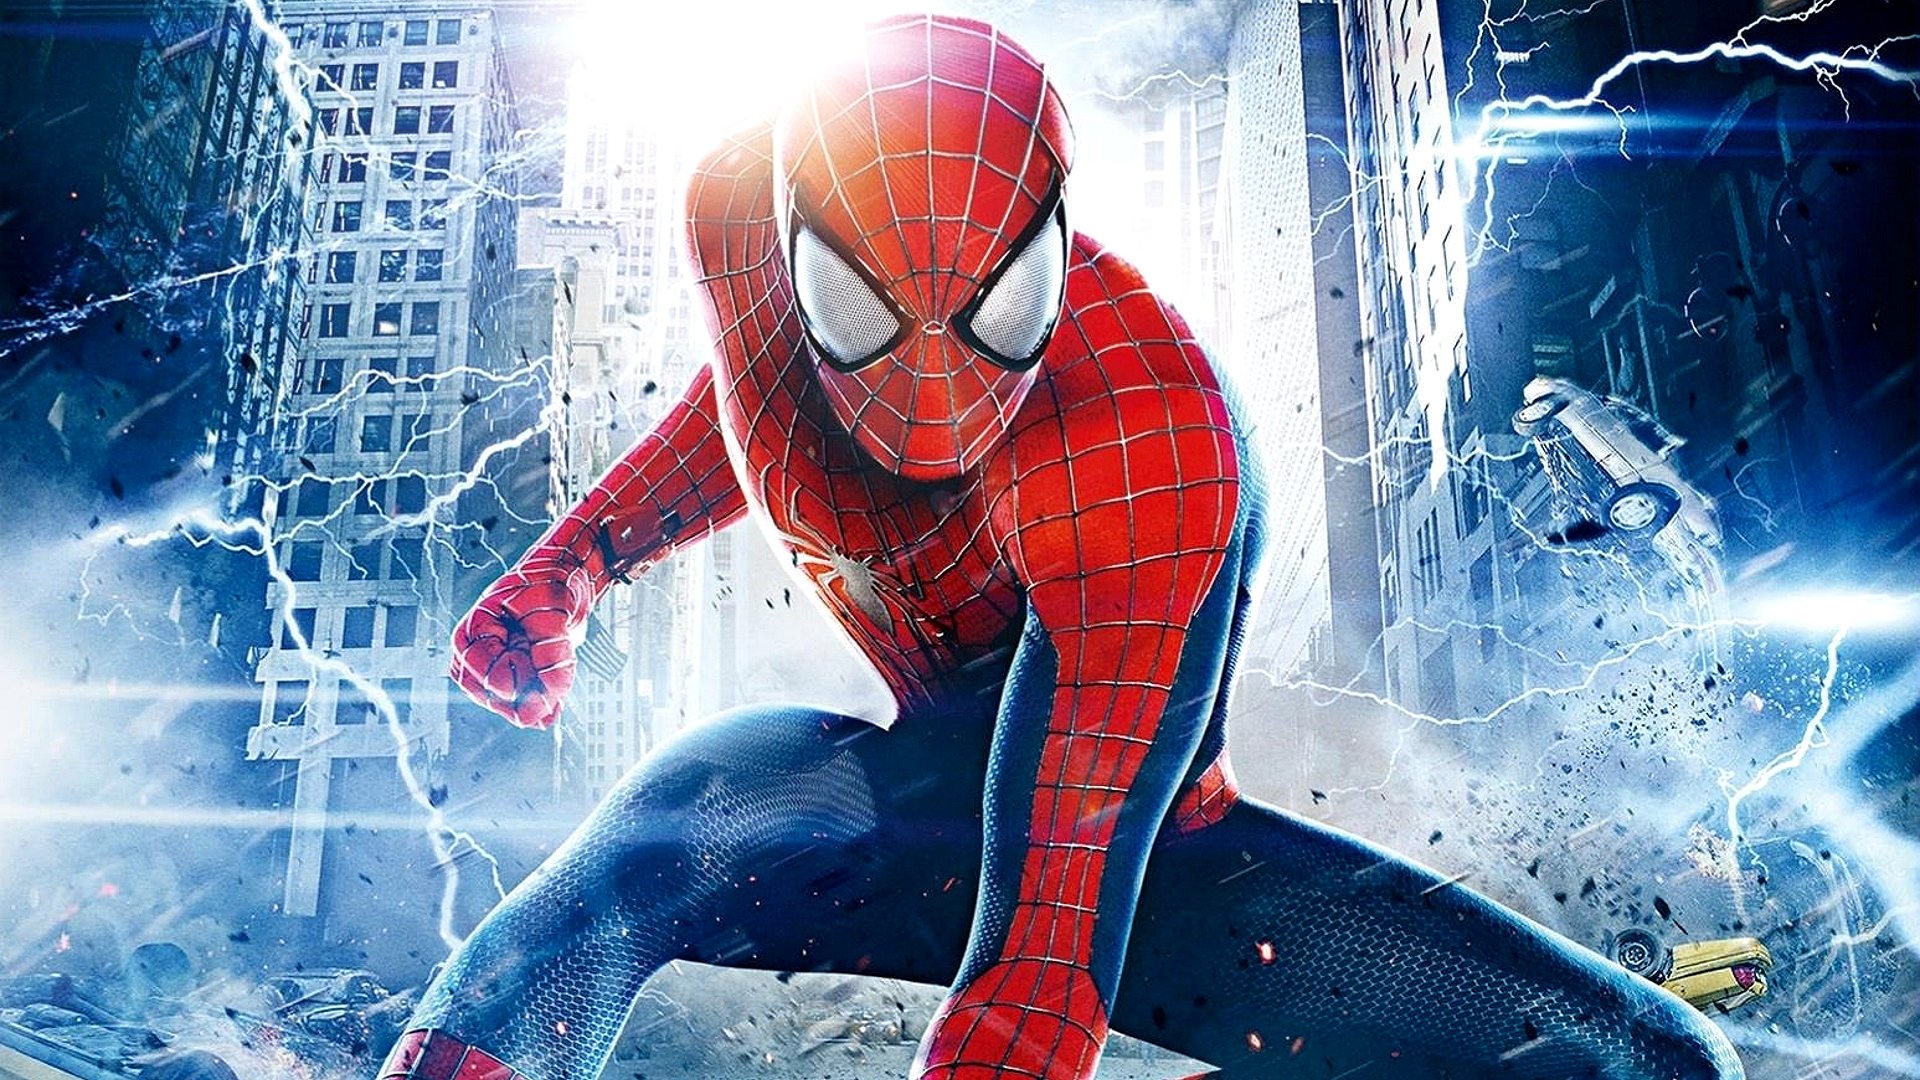 Free download The Amazing Spider Man 2 Movie Poster ...